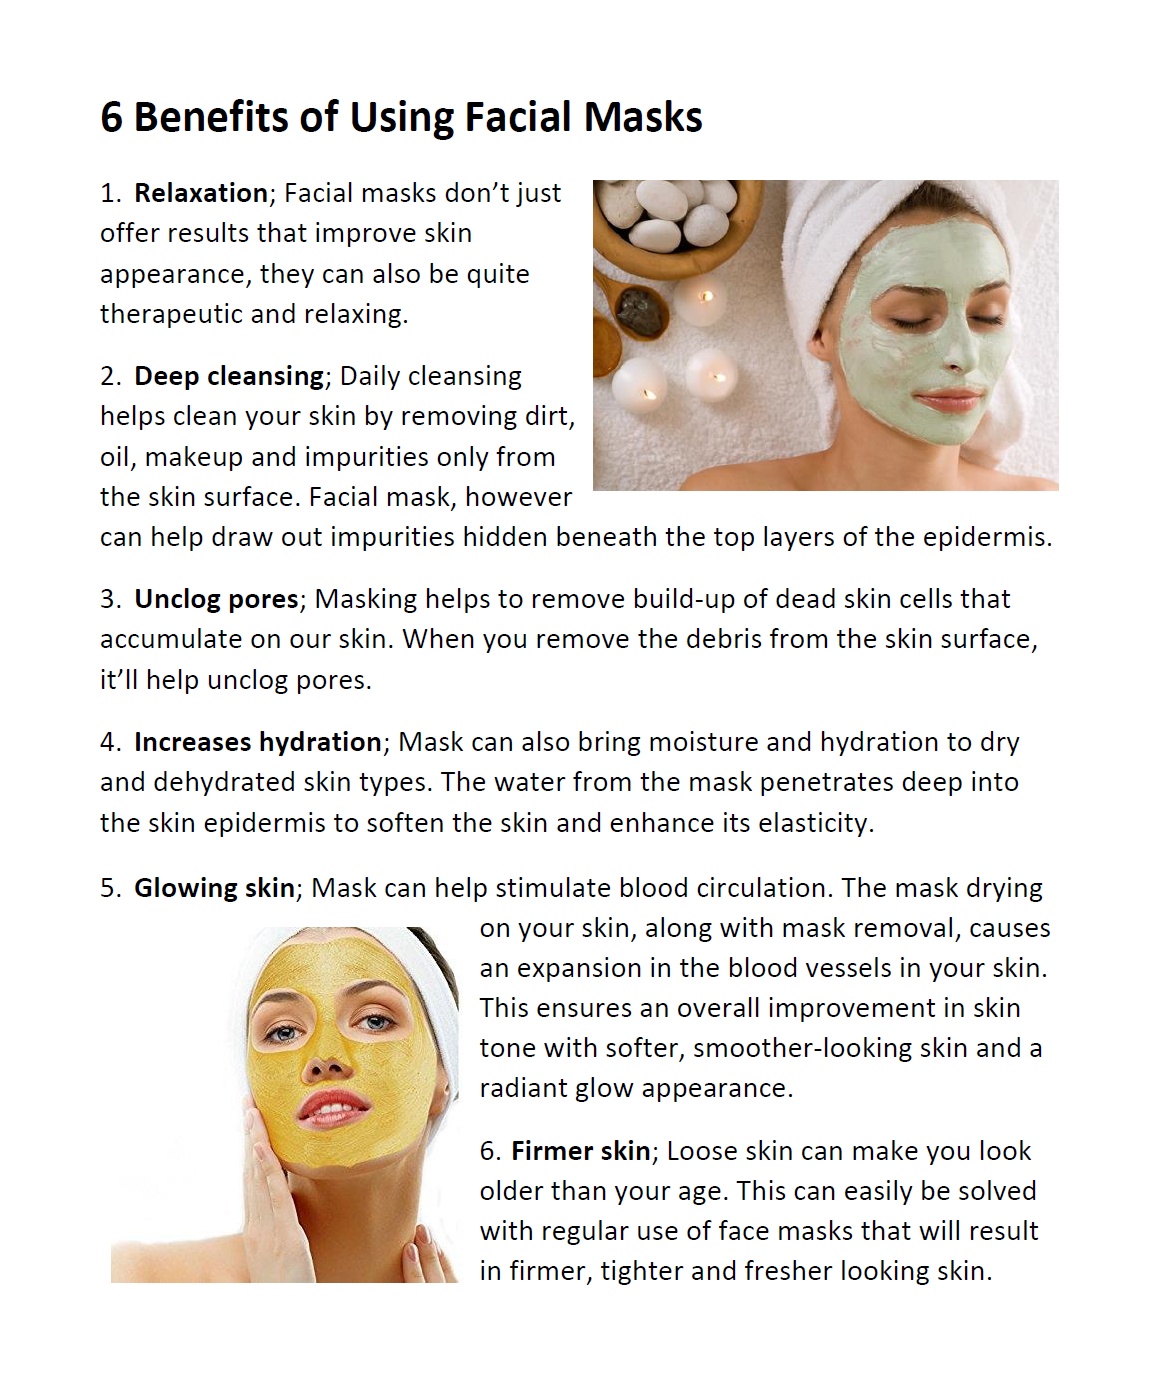 Benefits of facial mask